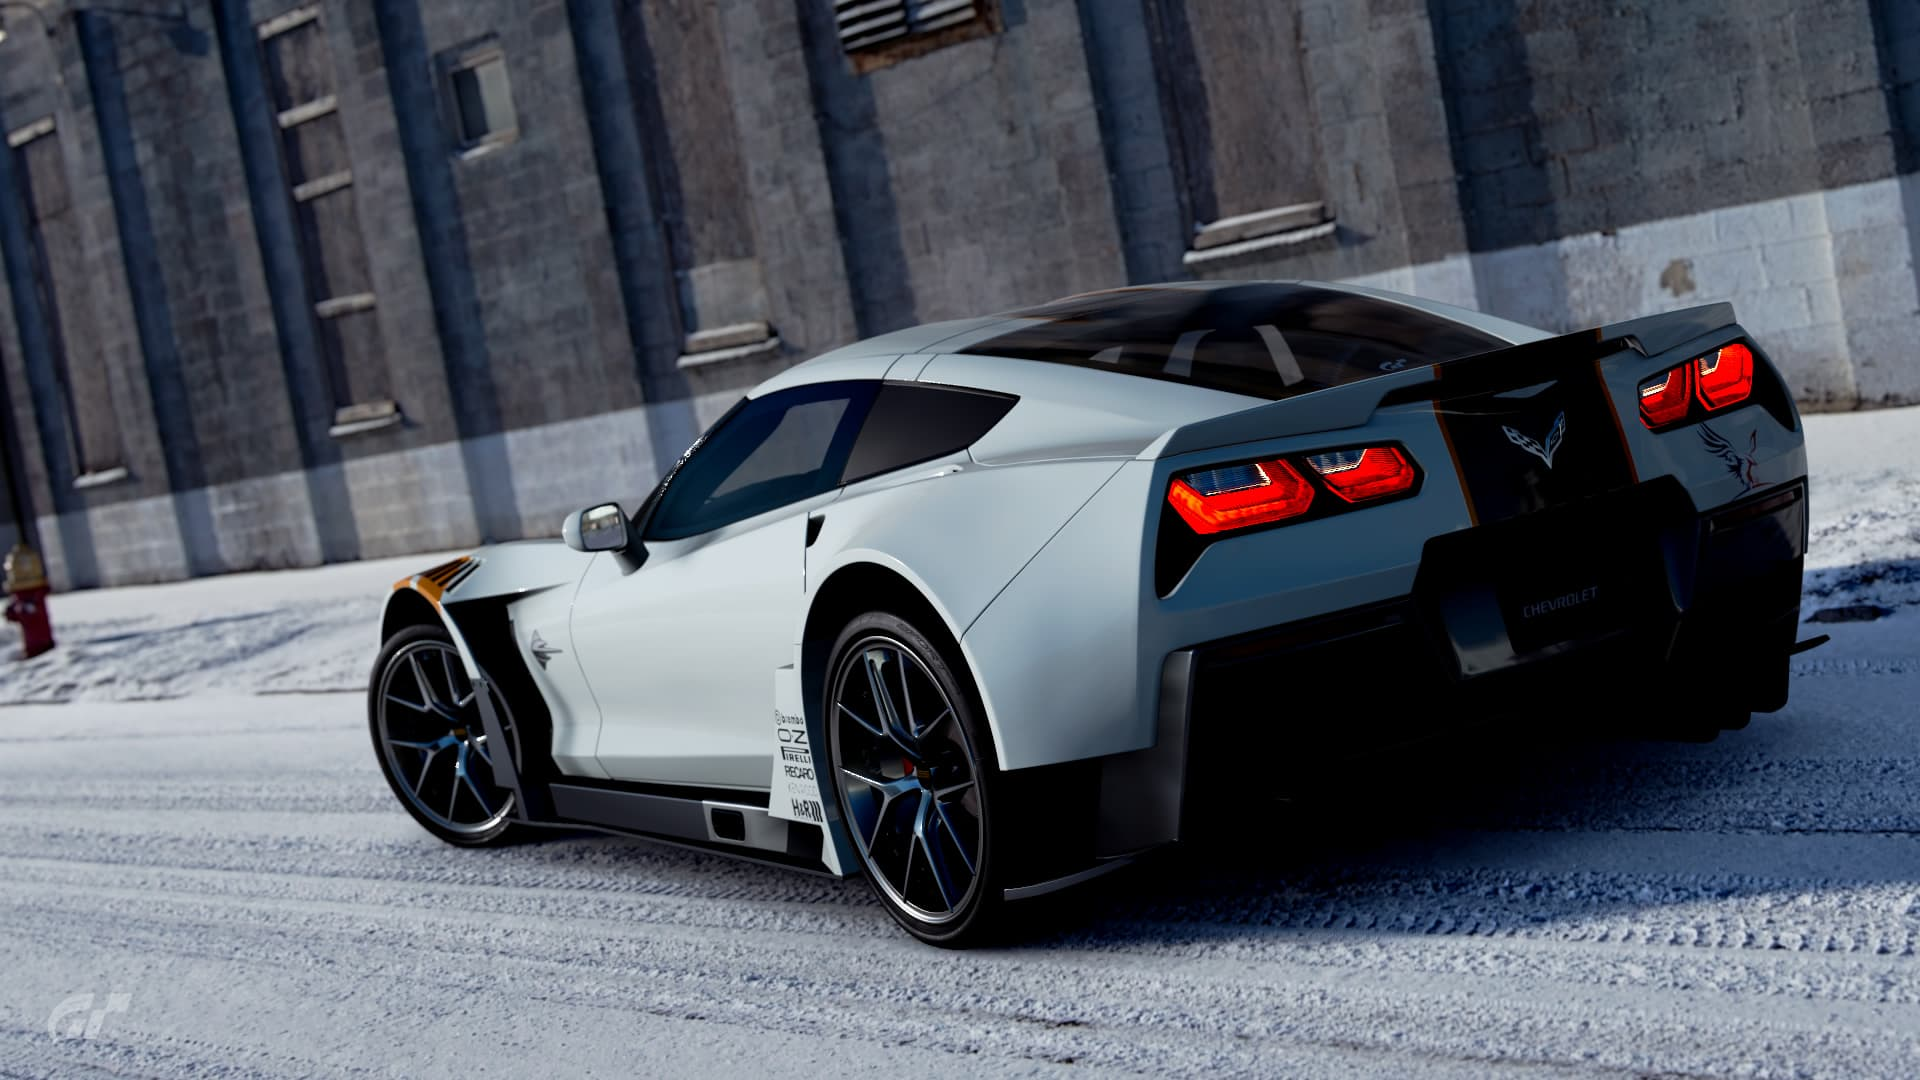 Chevrolet Corvette Gr.3 back lights